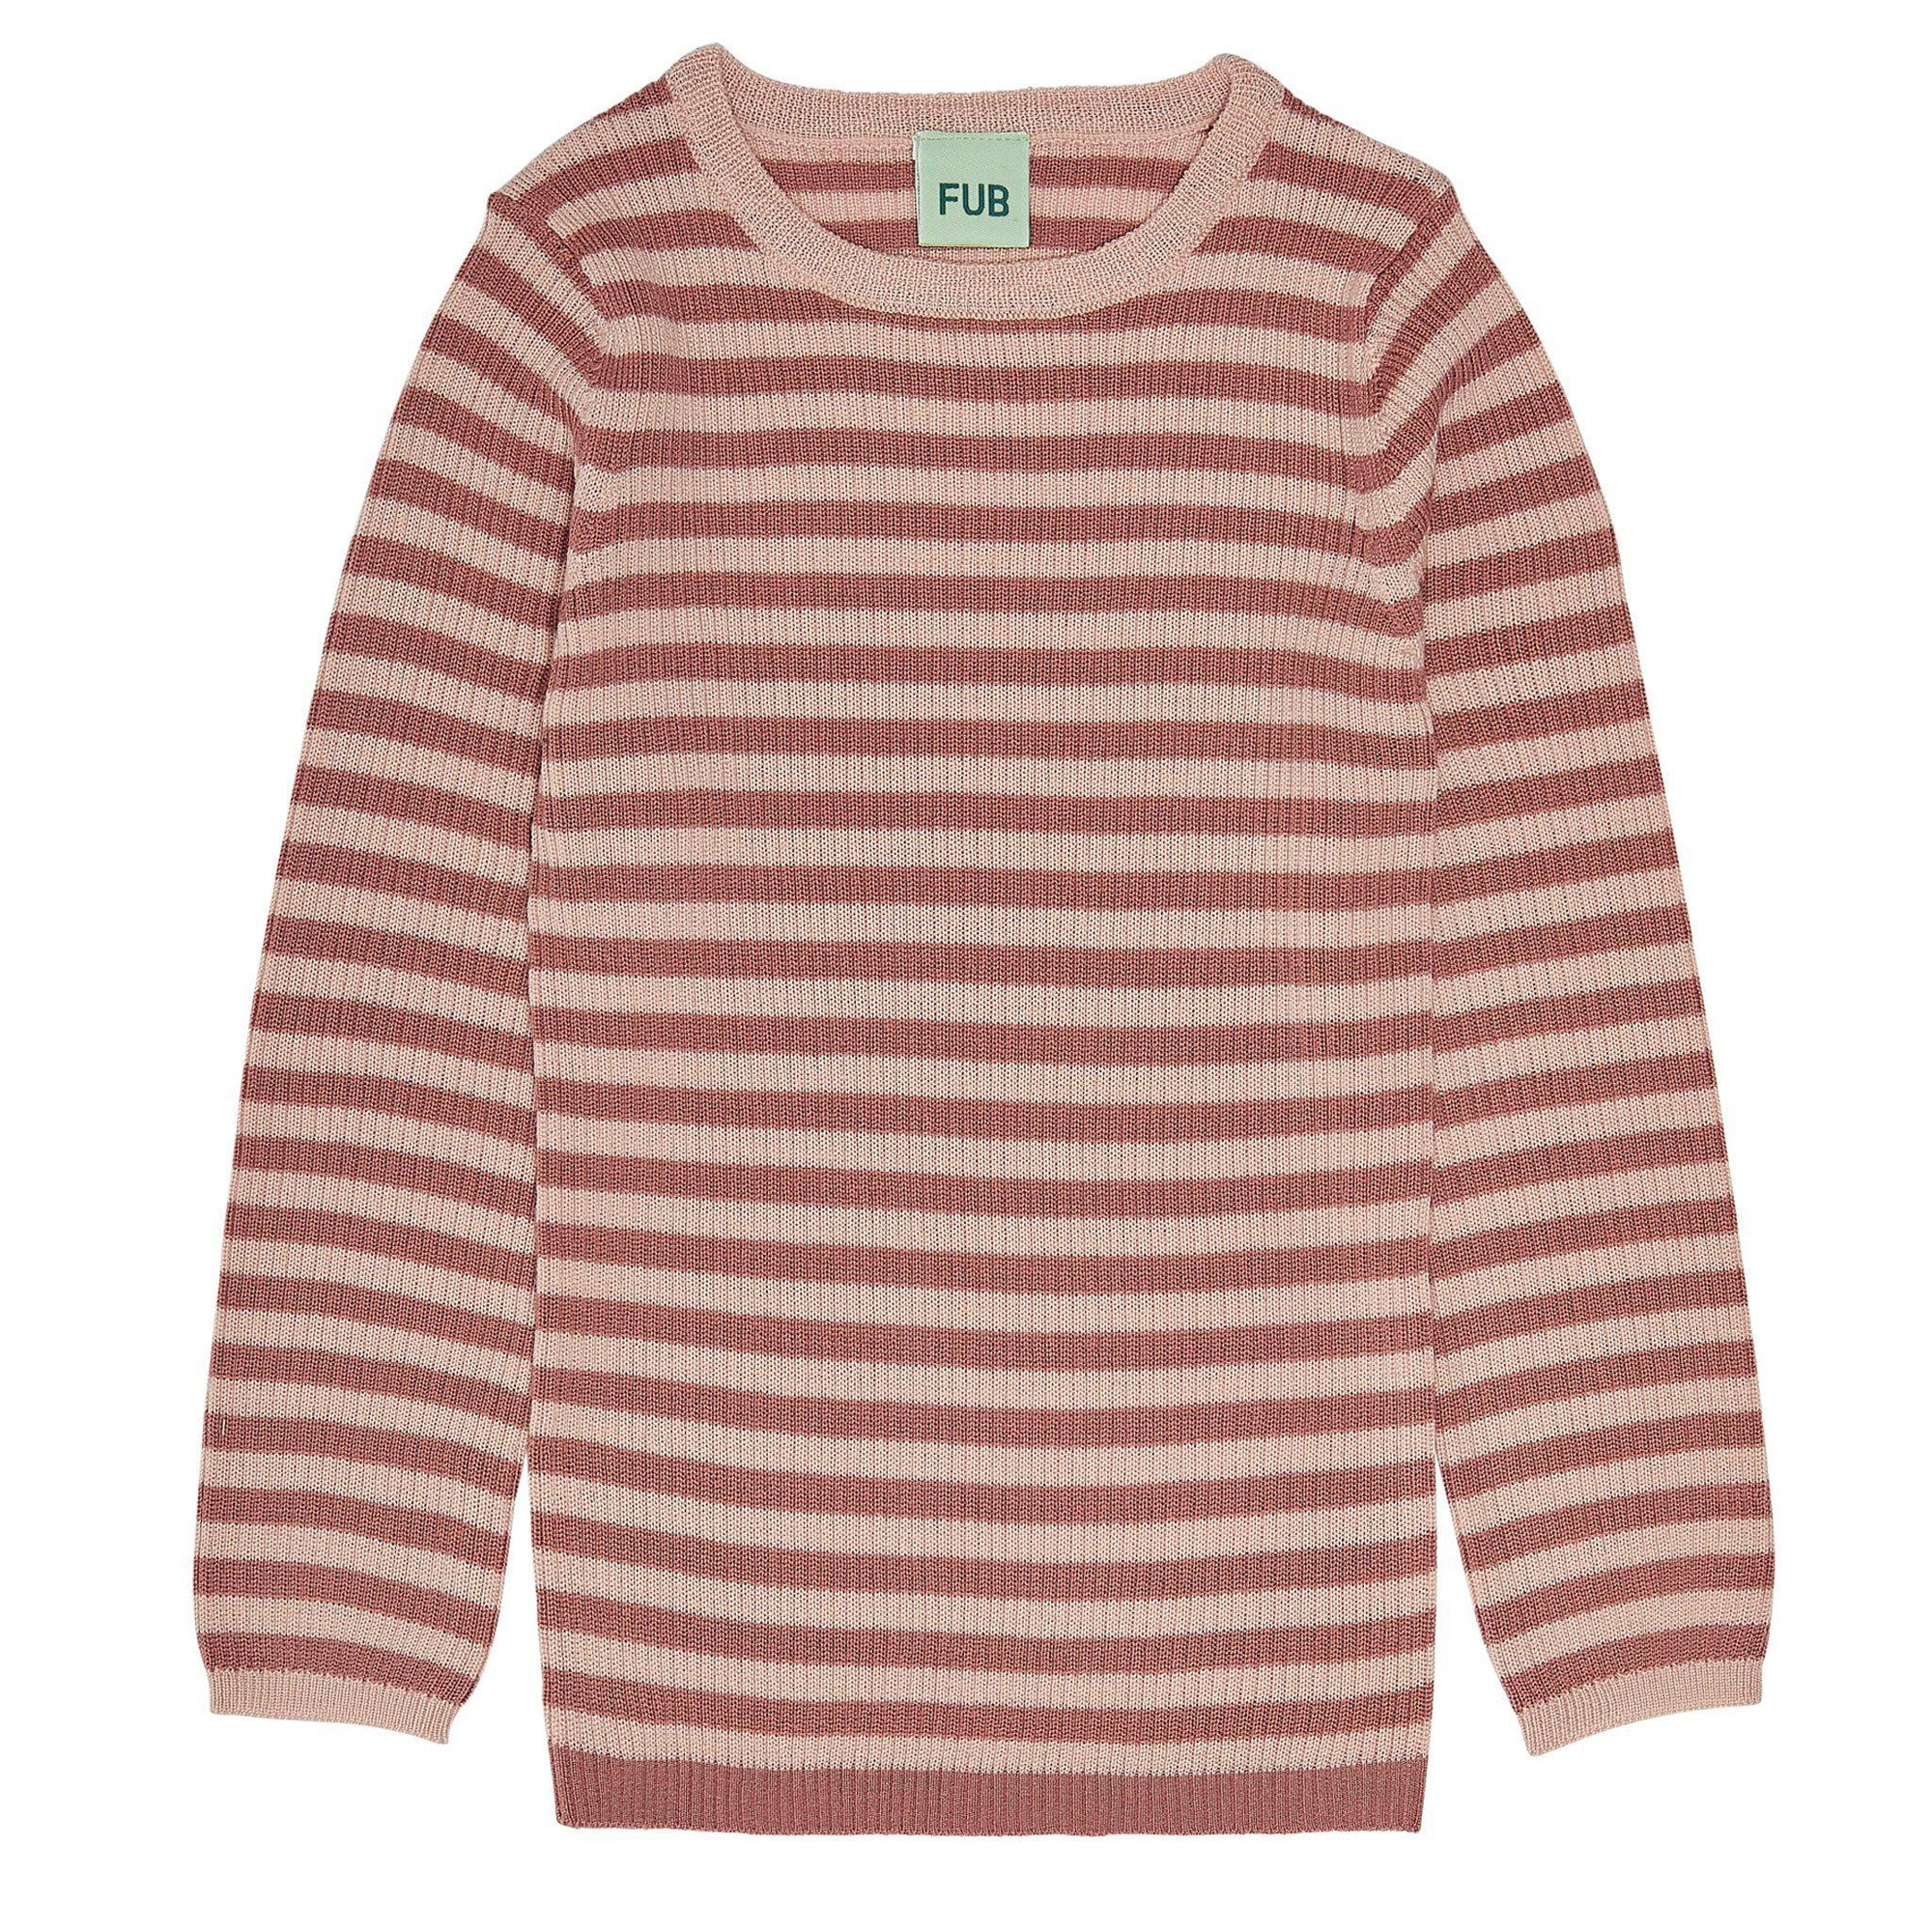 Pulover FUB lână merinos extra fine knit - Striped Rib Coral/Pale Pink-FUB-HipHip.ro